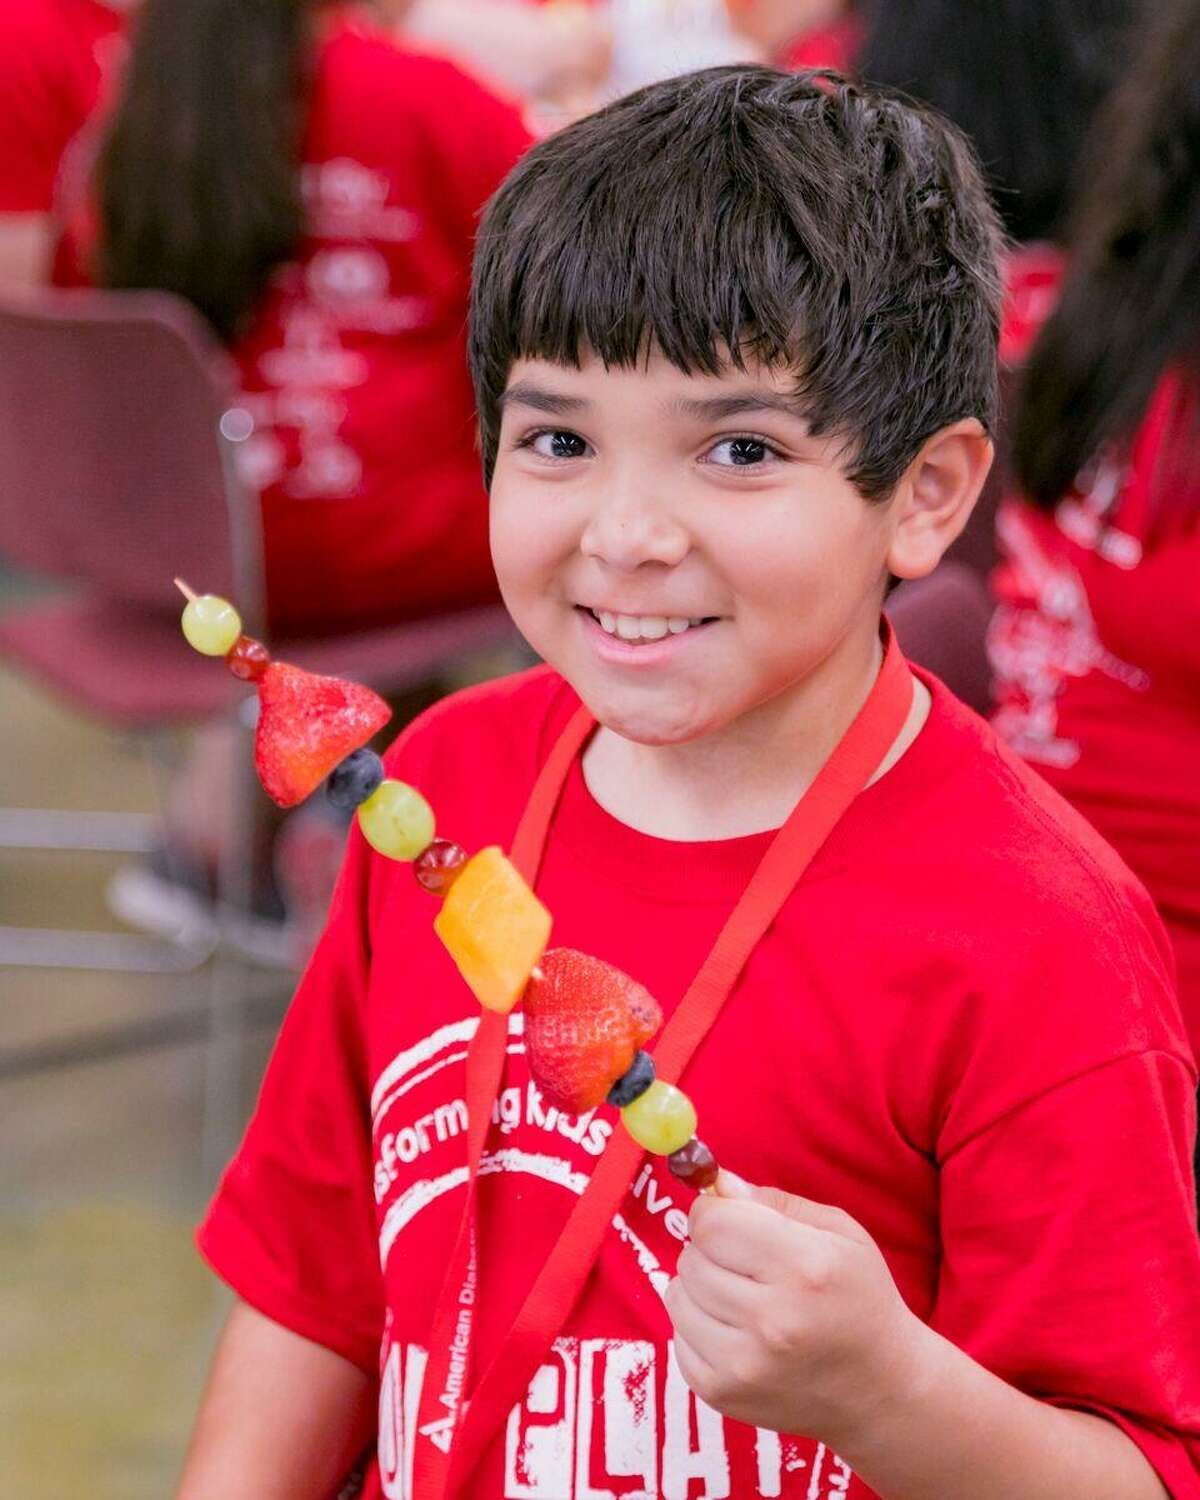 Devin Guzman enjoys a healthy snack at Camp PowerUp. The American Diabetes Association hosts the camp in San Antonio each summer for children who are at risk of developing Type 2 diabetes.